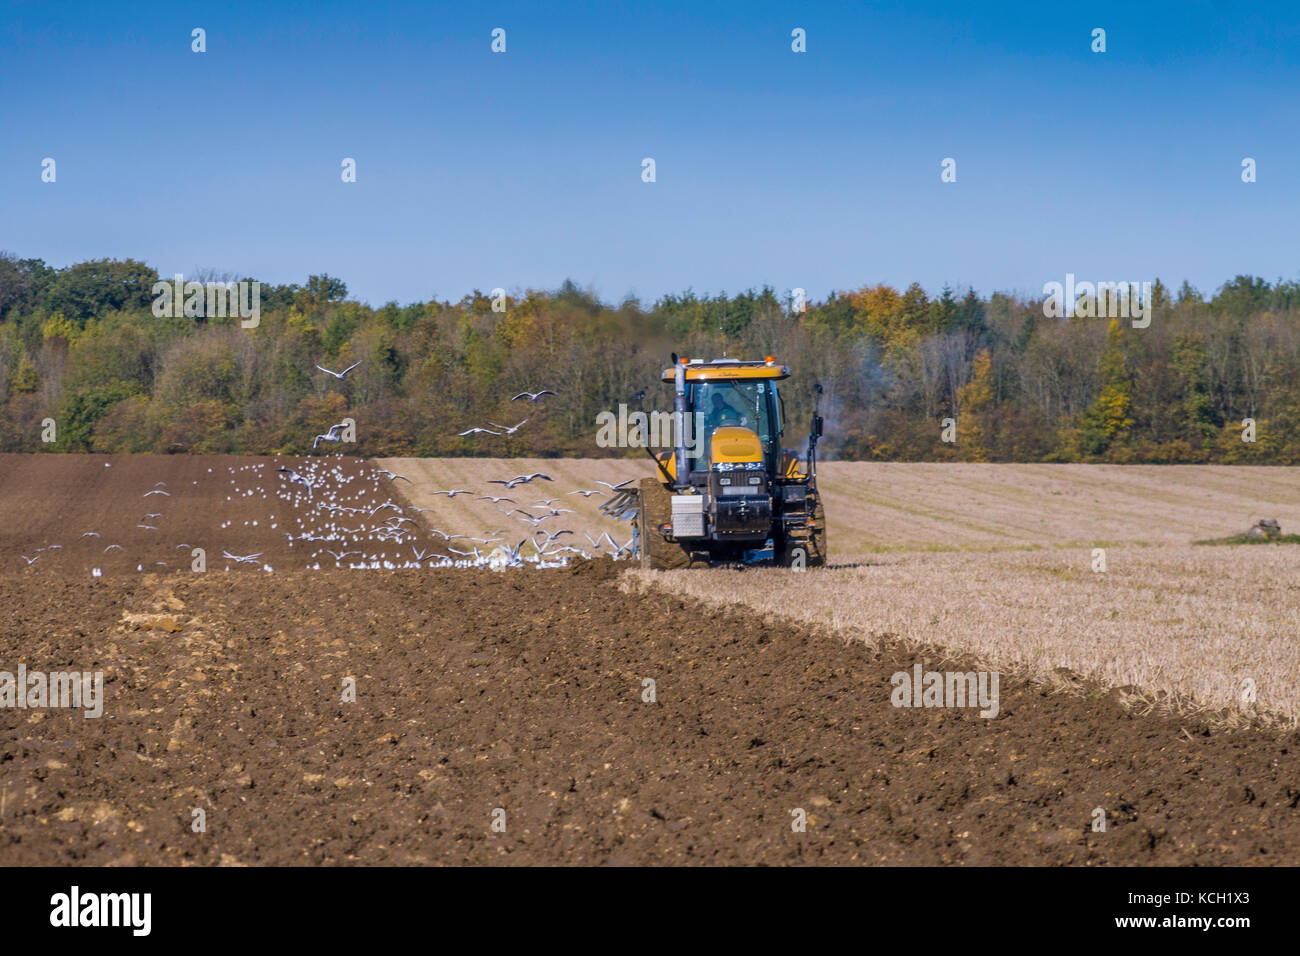 Caterpillar Tractor ploughing on bright Autumn day - Stock Image